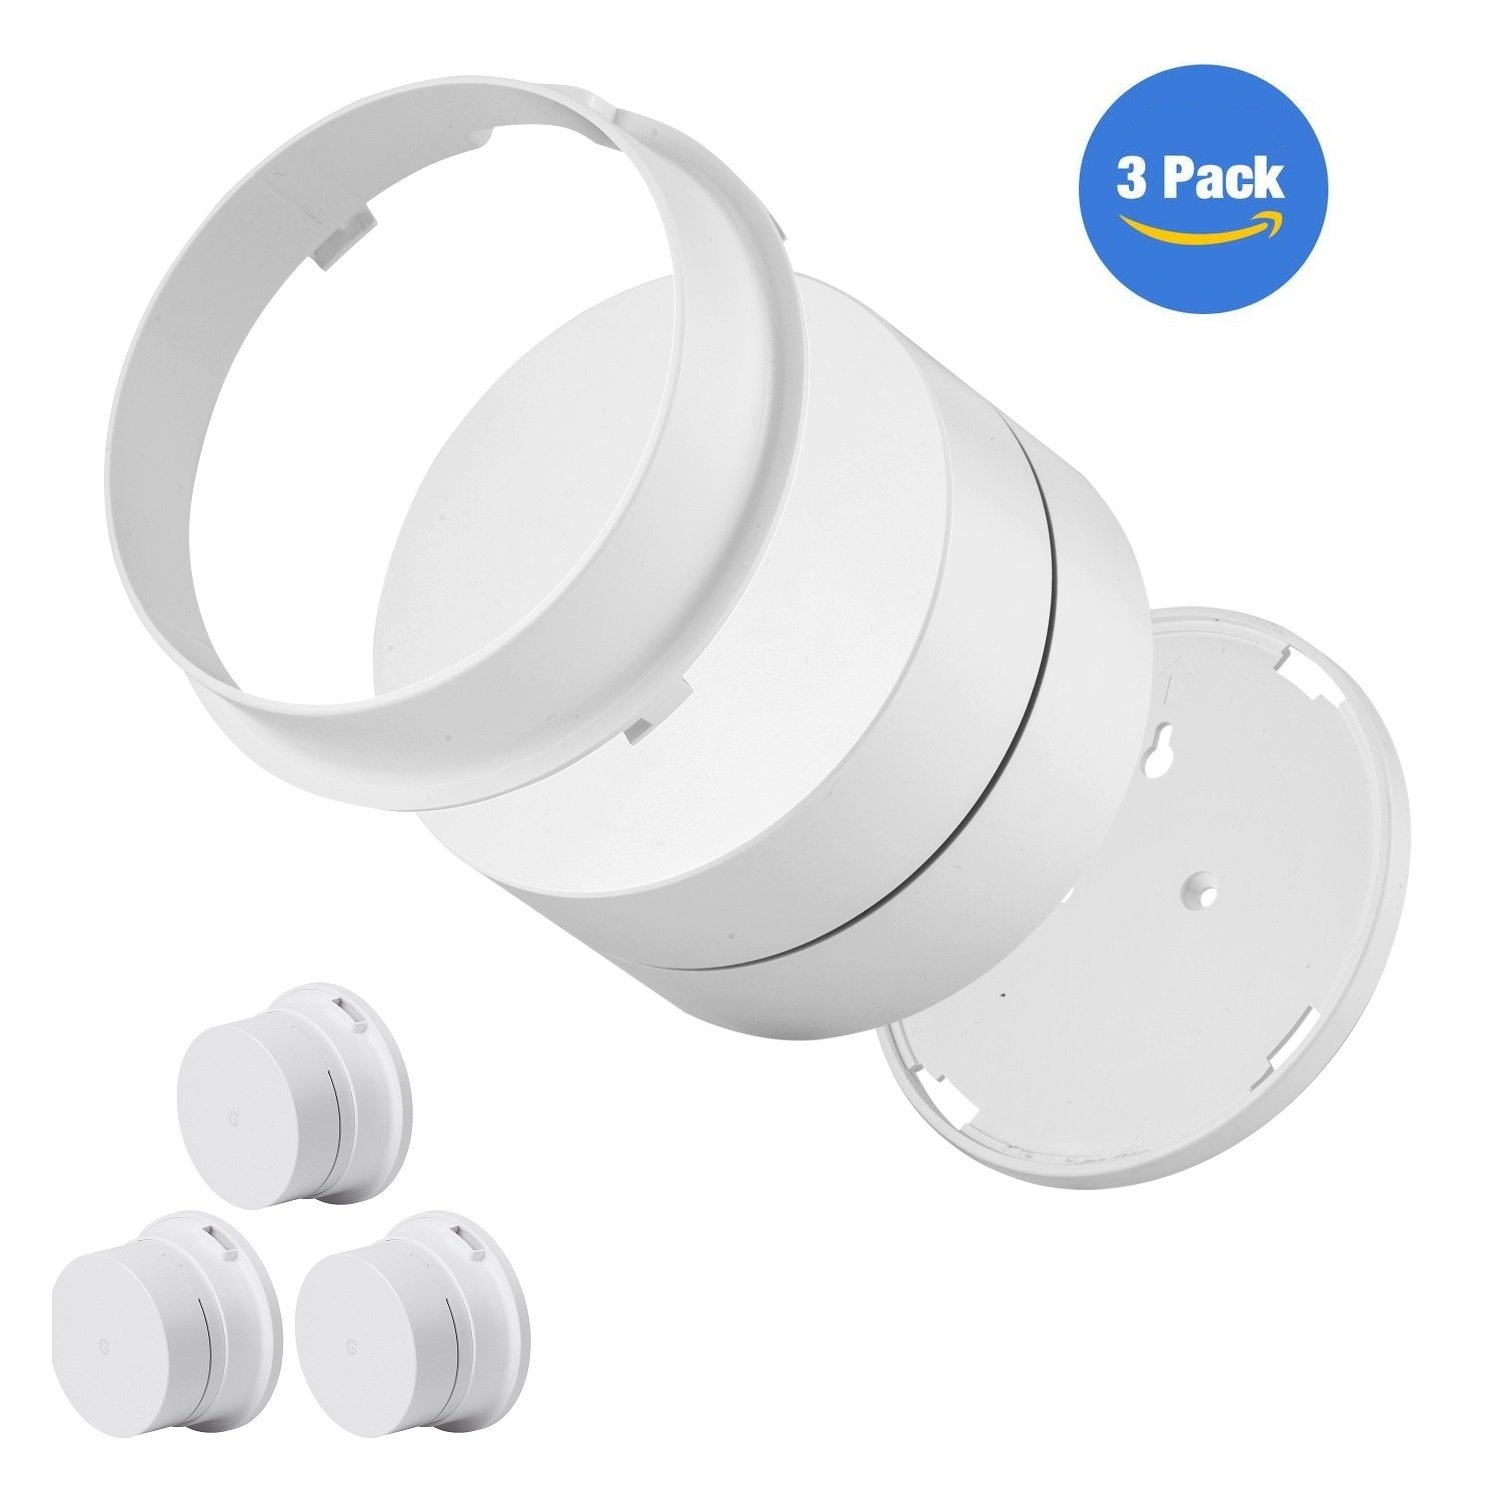 [#1] Google WiFi Wall Mount - Ceiling Mount Holder for Google WiFi Mesh System, Space Saving and Enlarging Coverage, Reinforced and Perfect Unity (3-Pack)